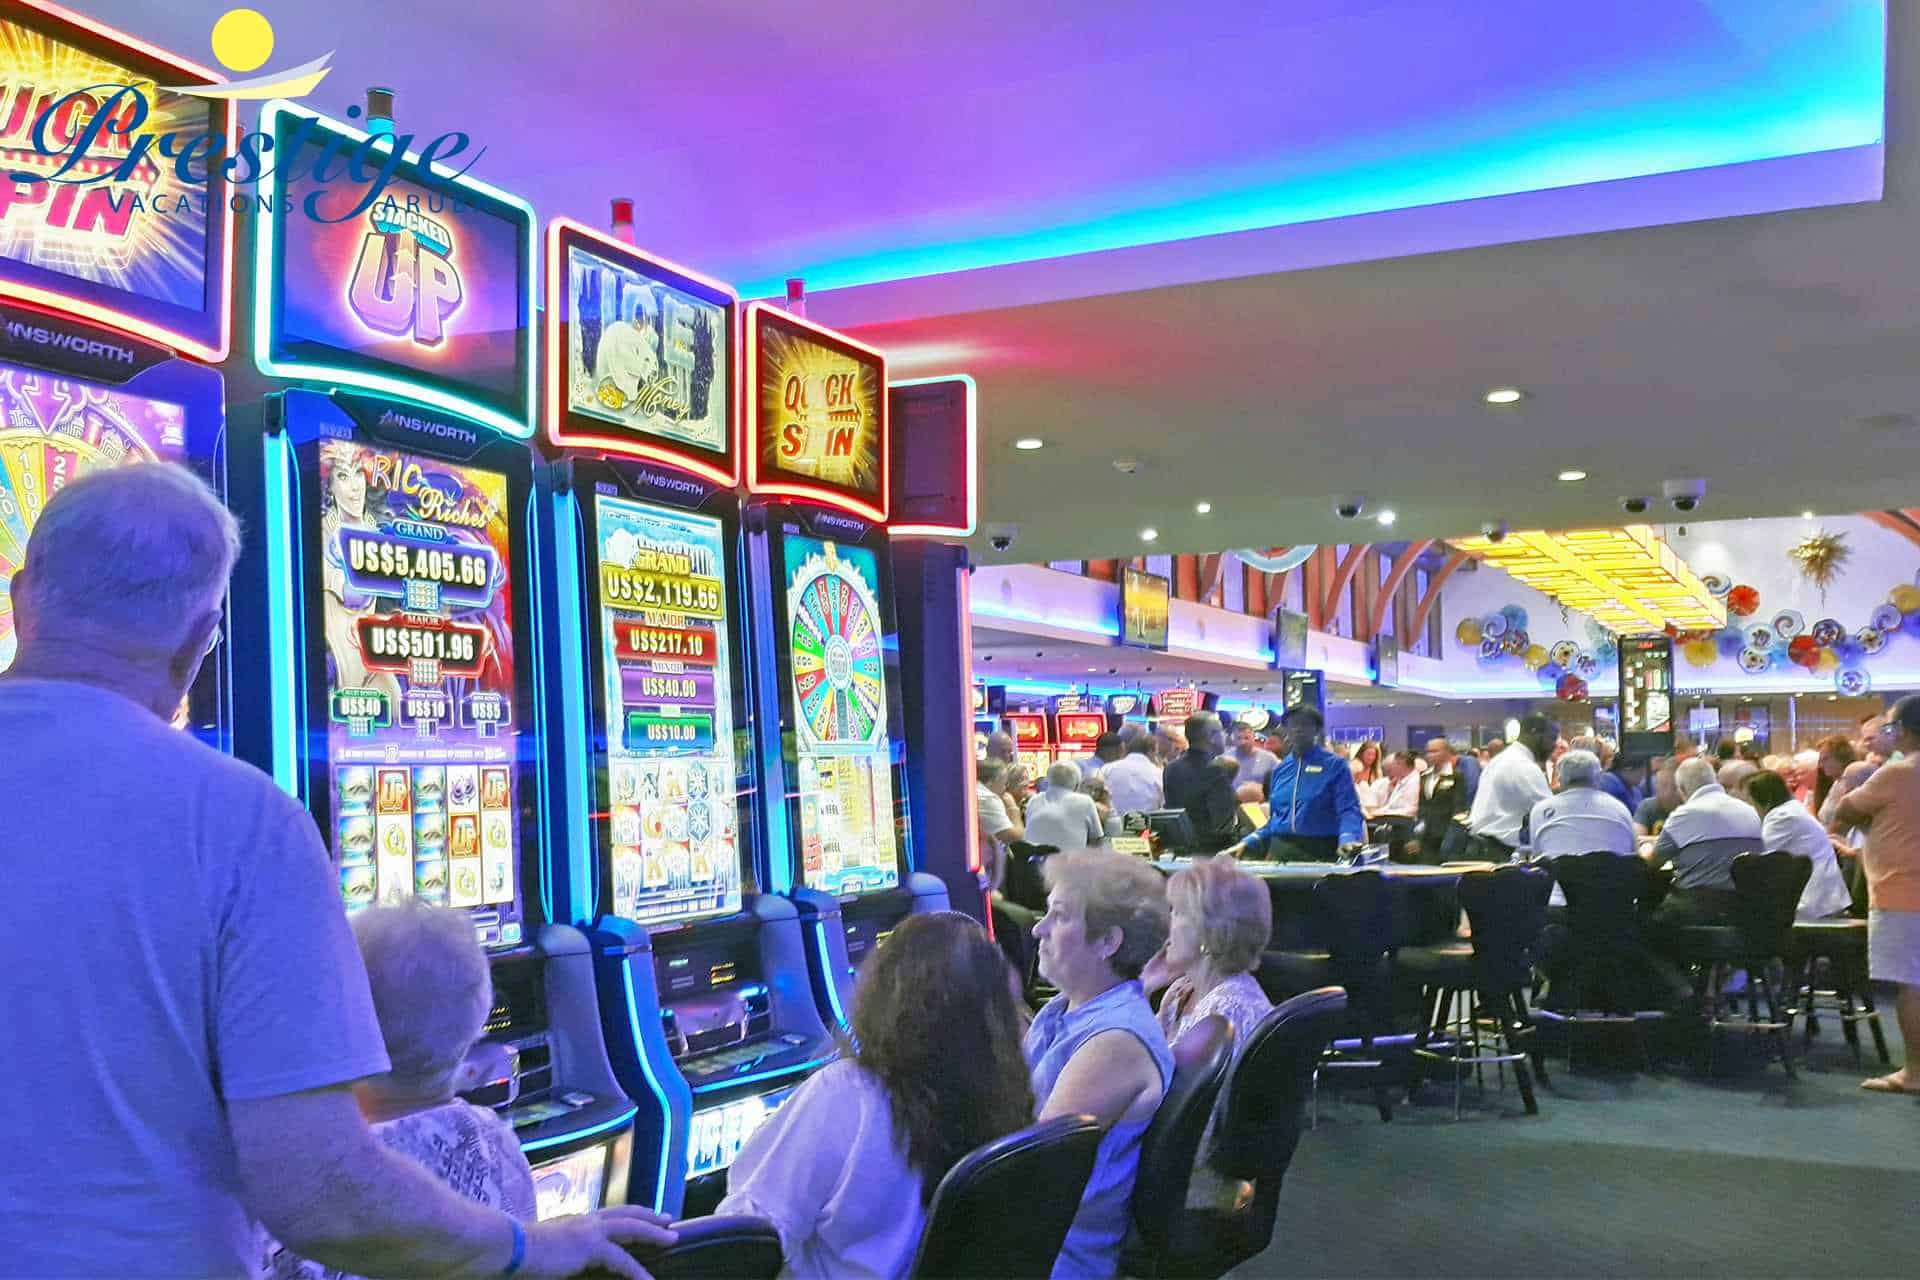 The Alhambra Casino with a variety of slots games, video gaming, and table games